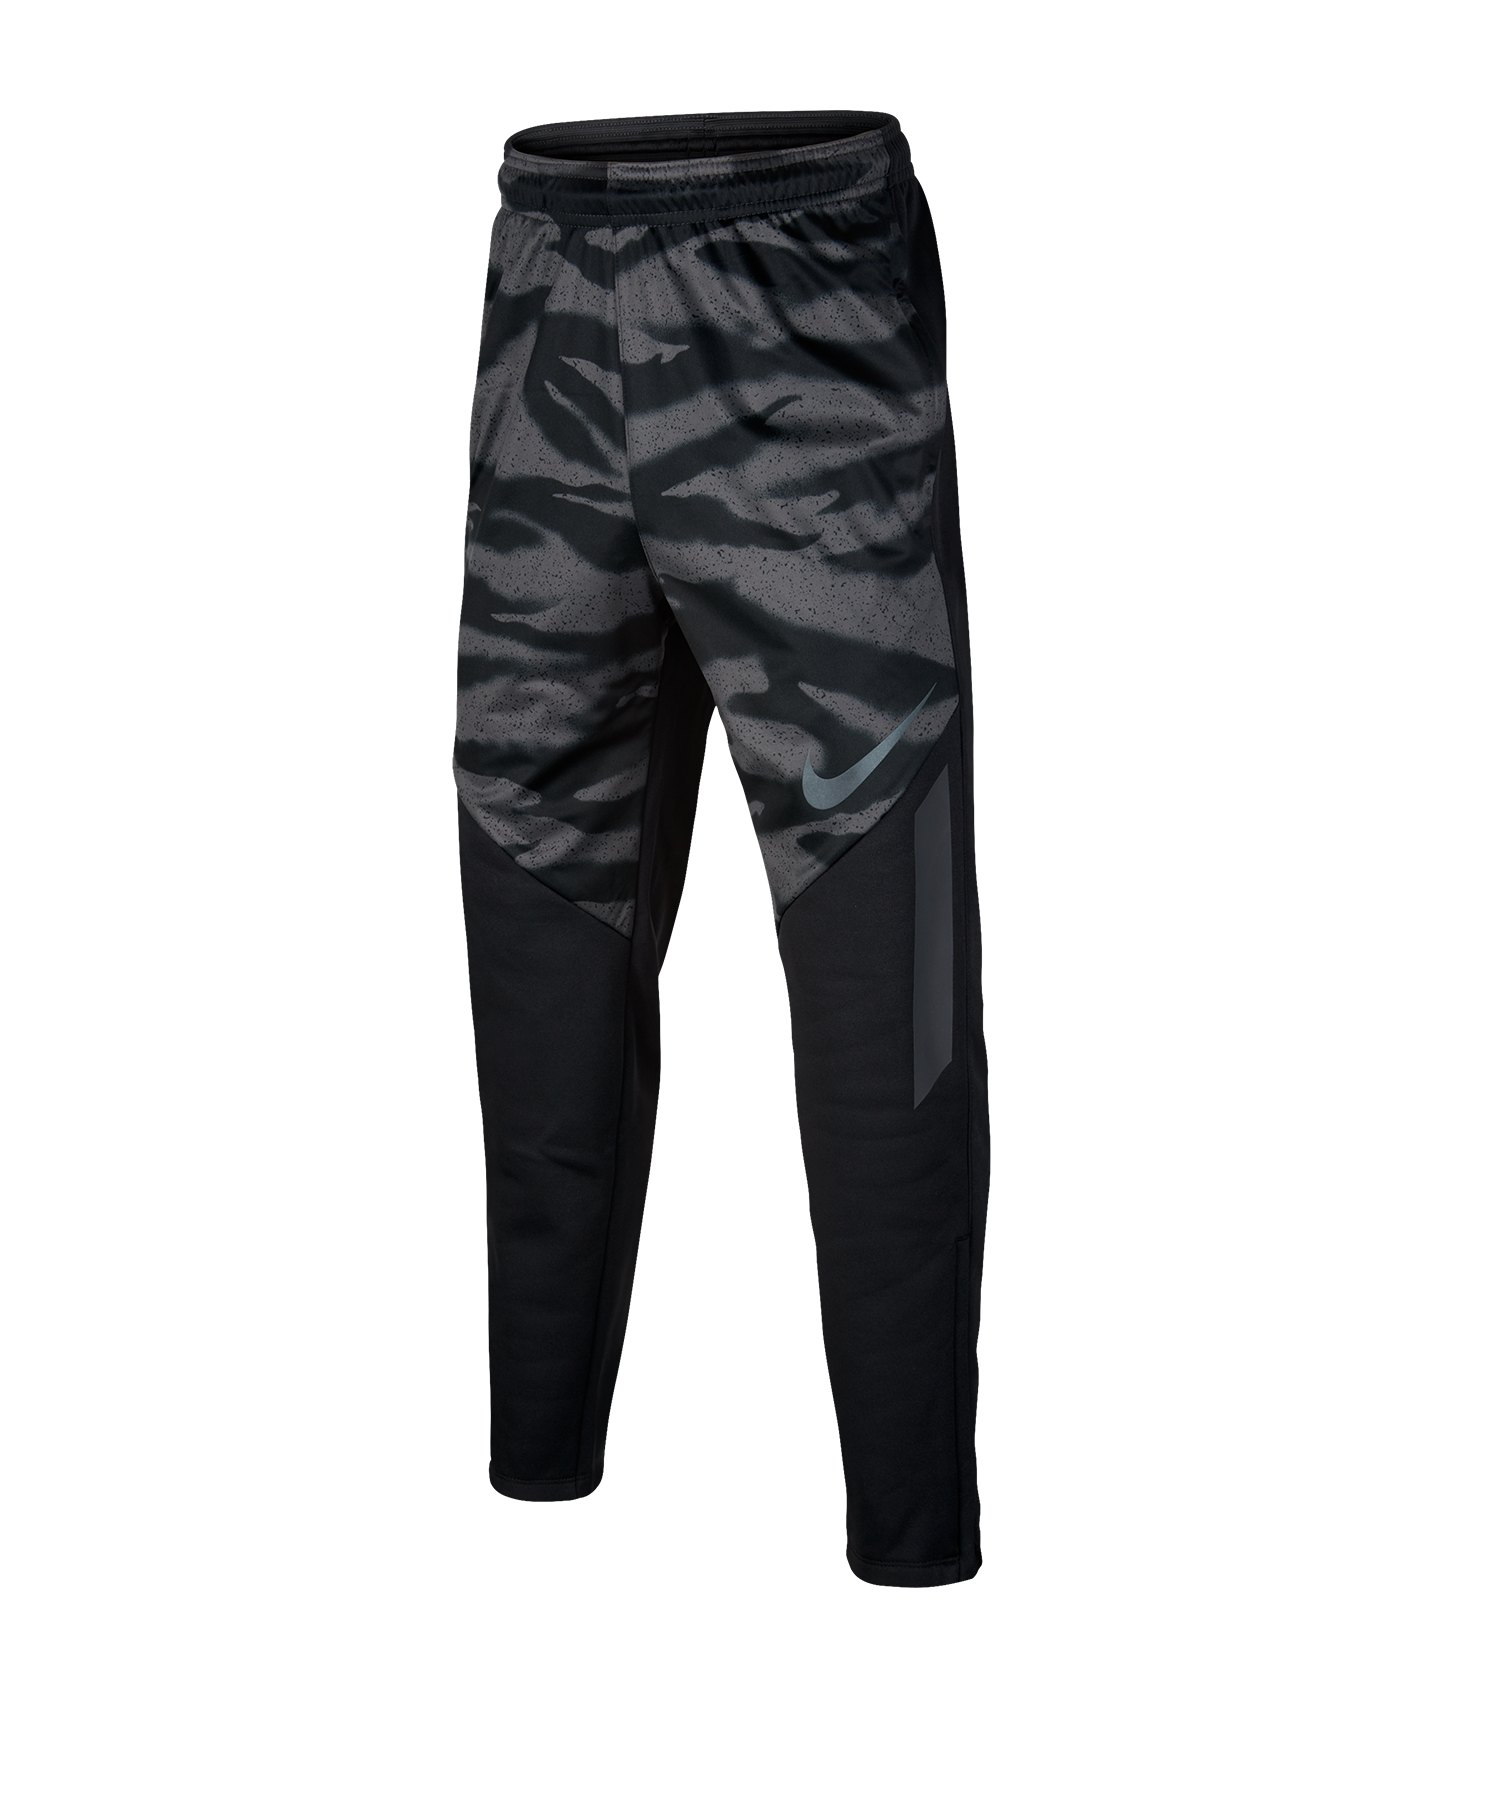 Nike Therma Pants Trainingshose Kids Schwarz F010 - schwarz